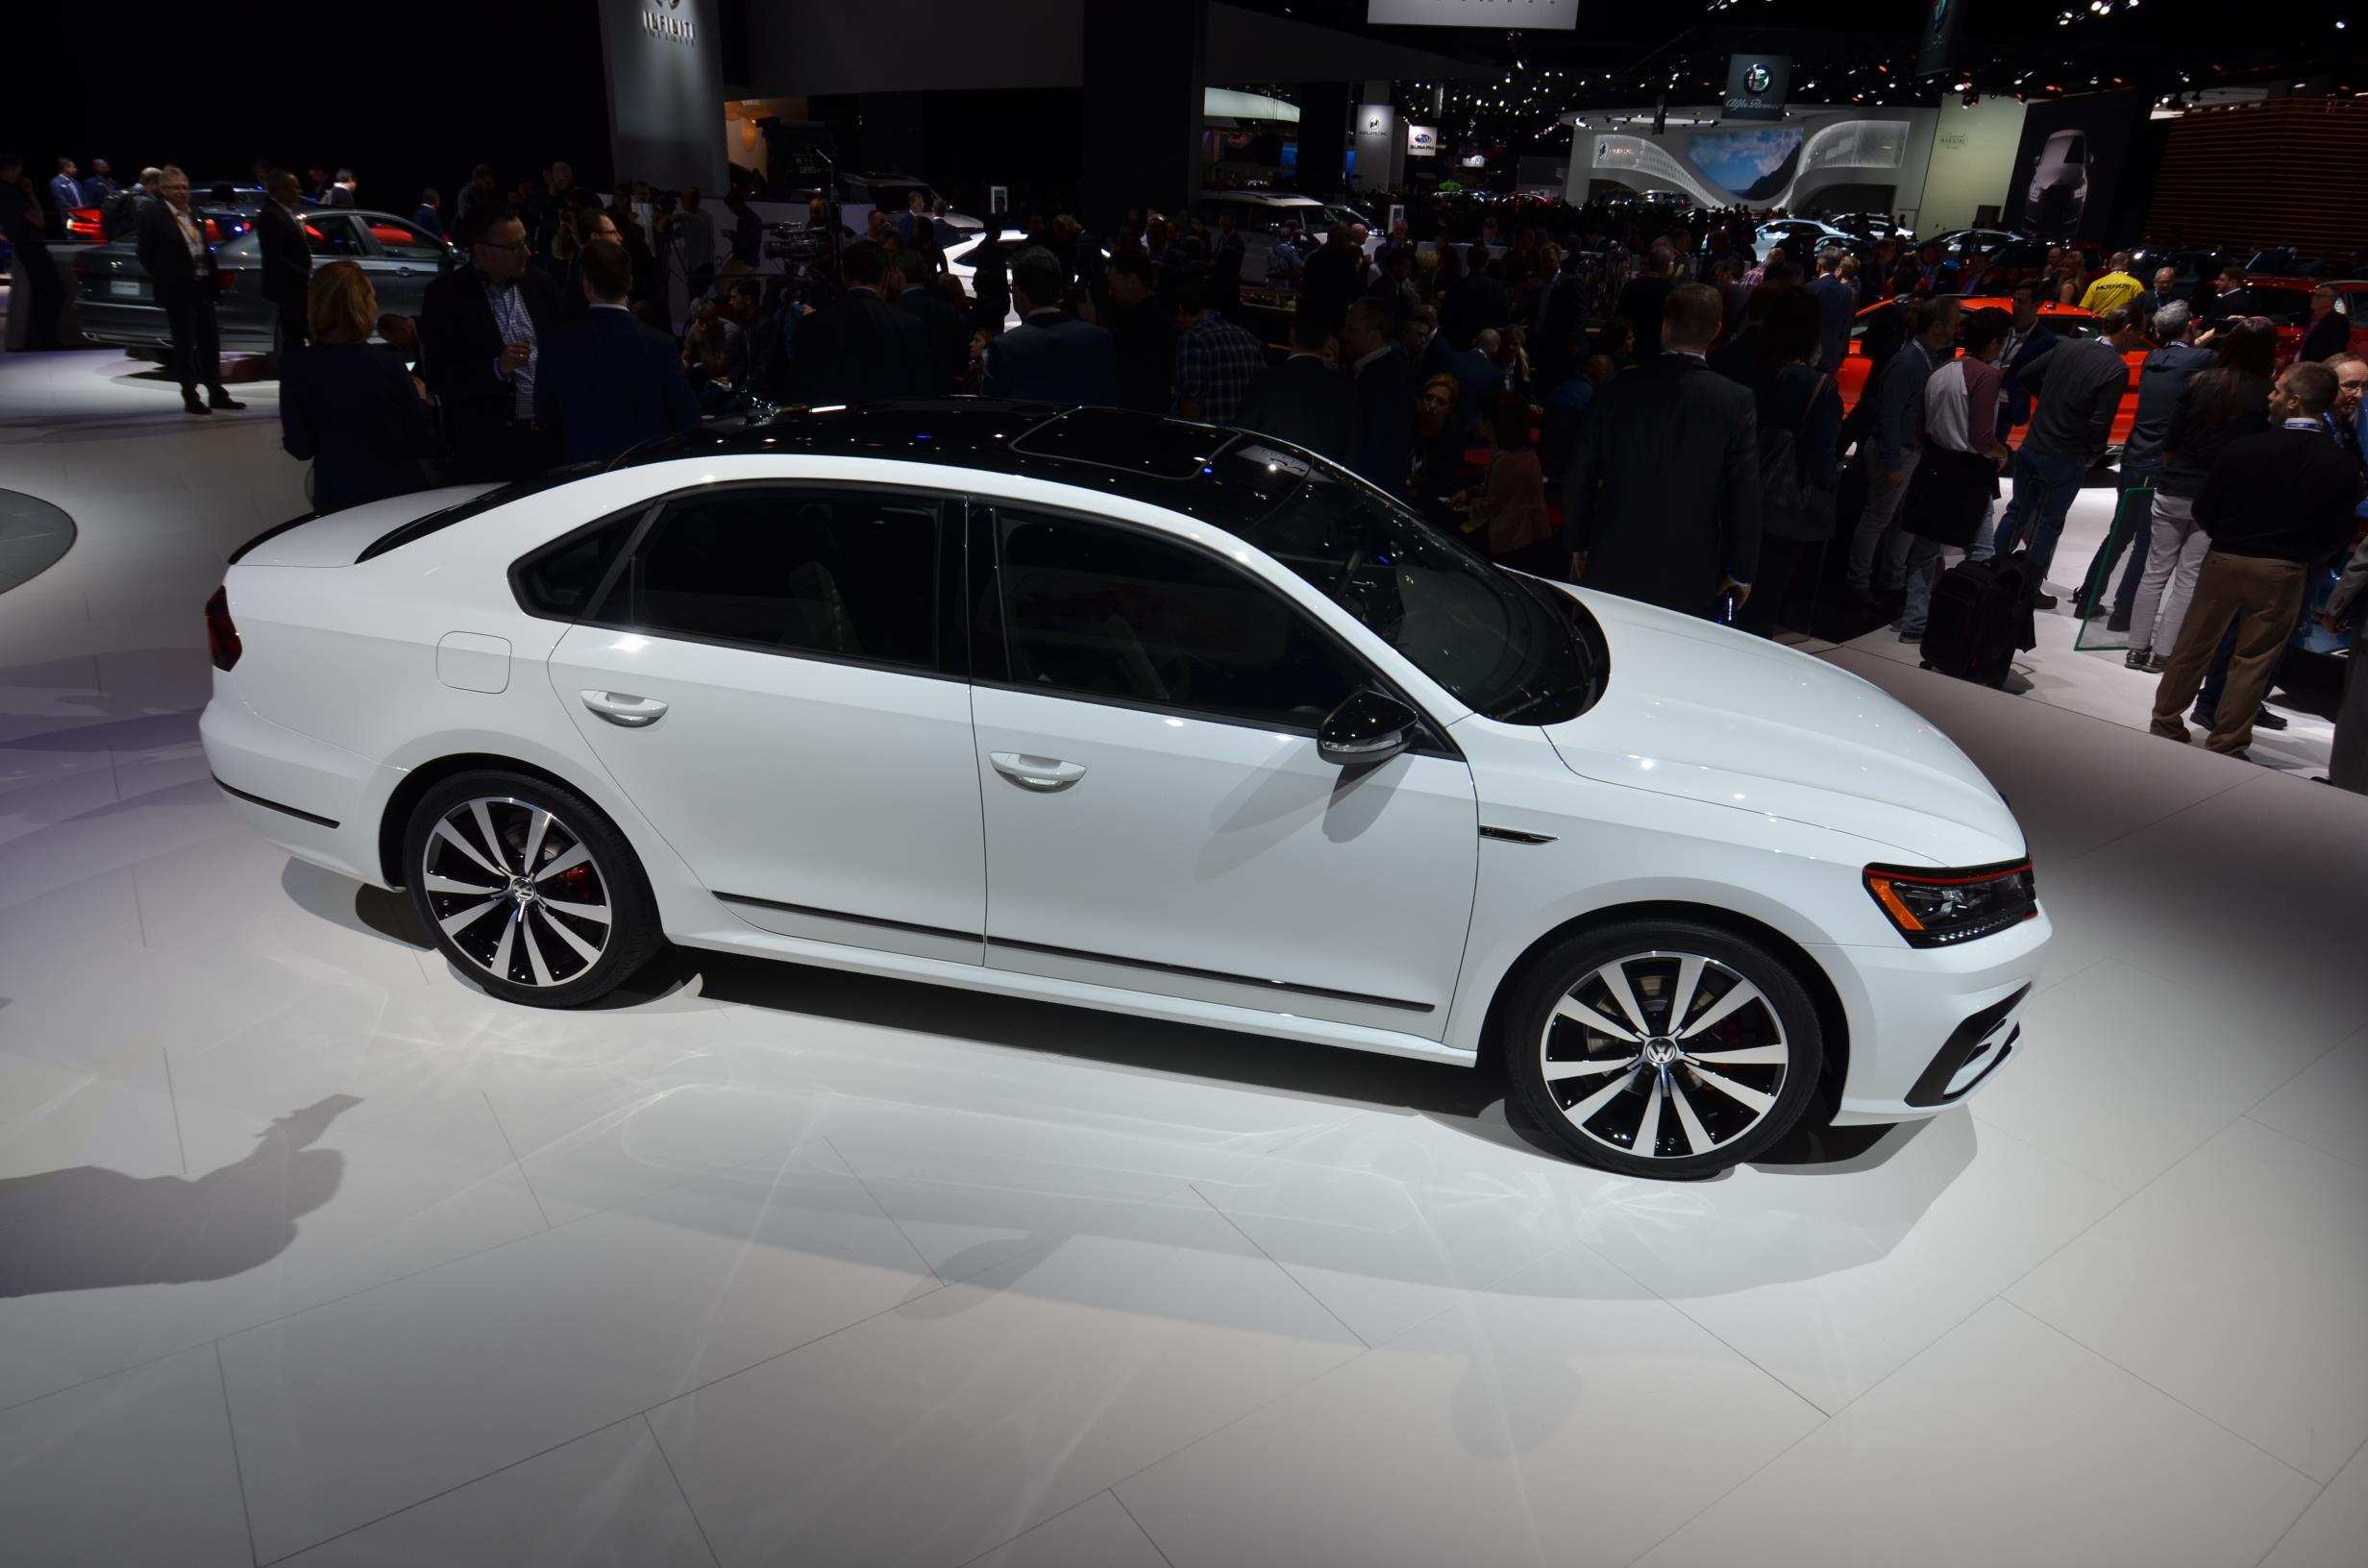 92 Best Review Vw Passat Gt 2019 Redesign and Concept by Vw Passat Gt 2019